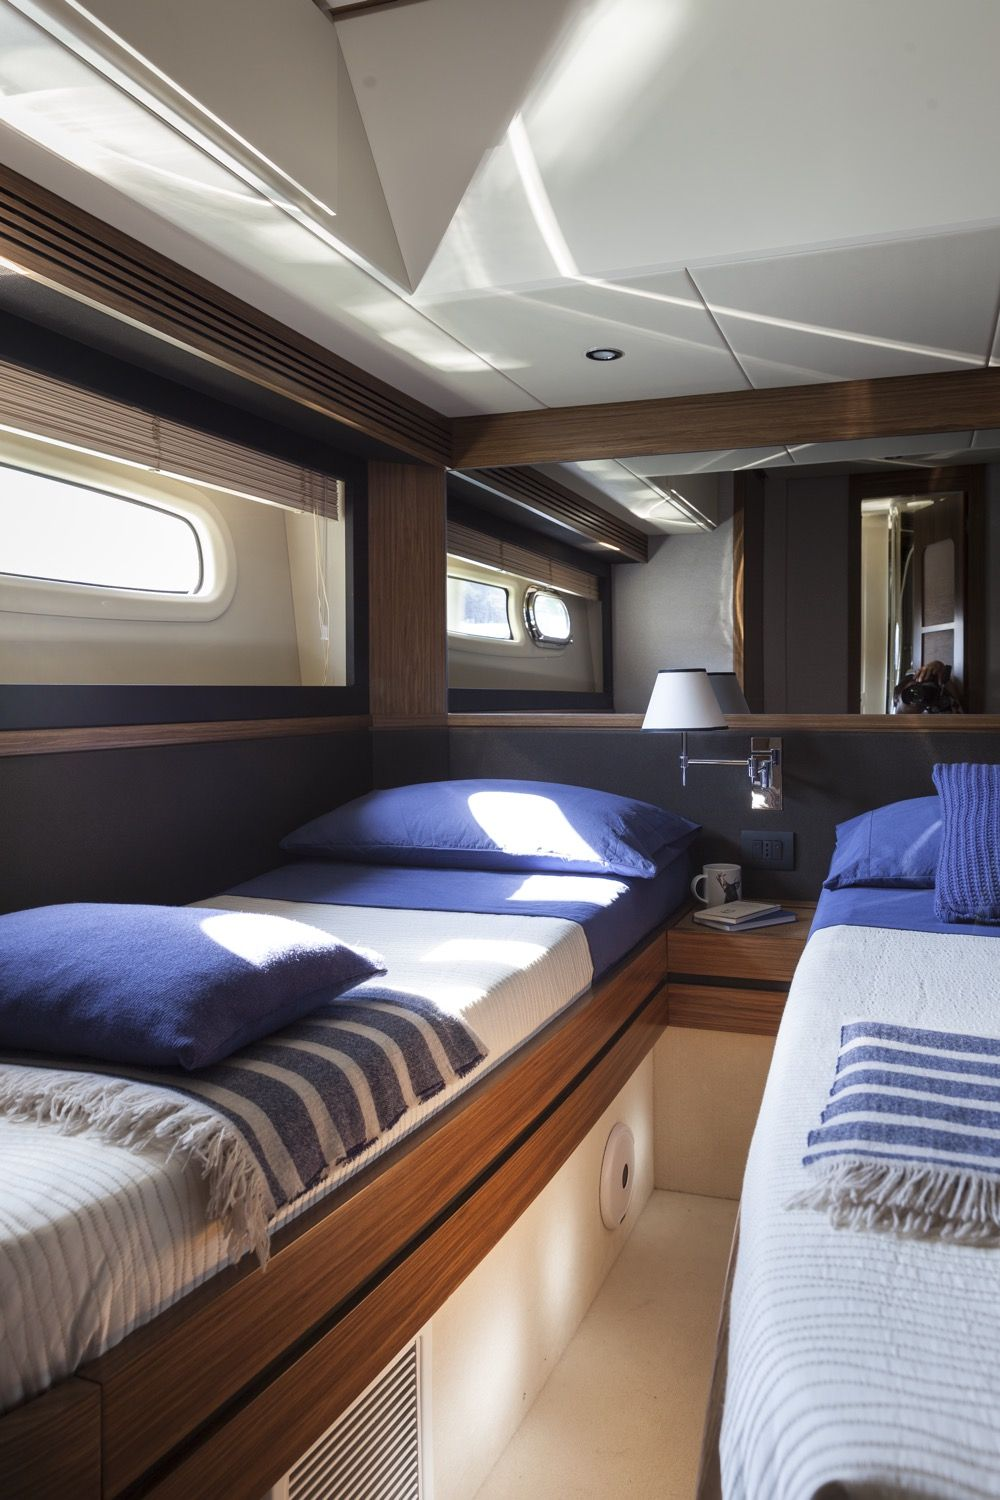 Pin By Carina Teed On Graces Room In 2019: The Brown Color I Want To Achieve On Maria's Boat